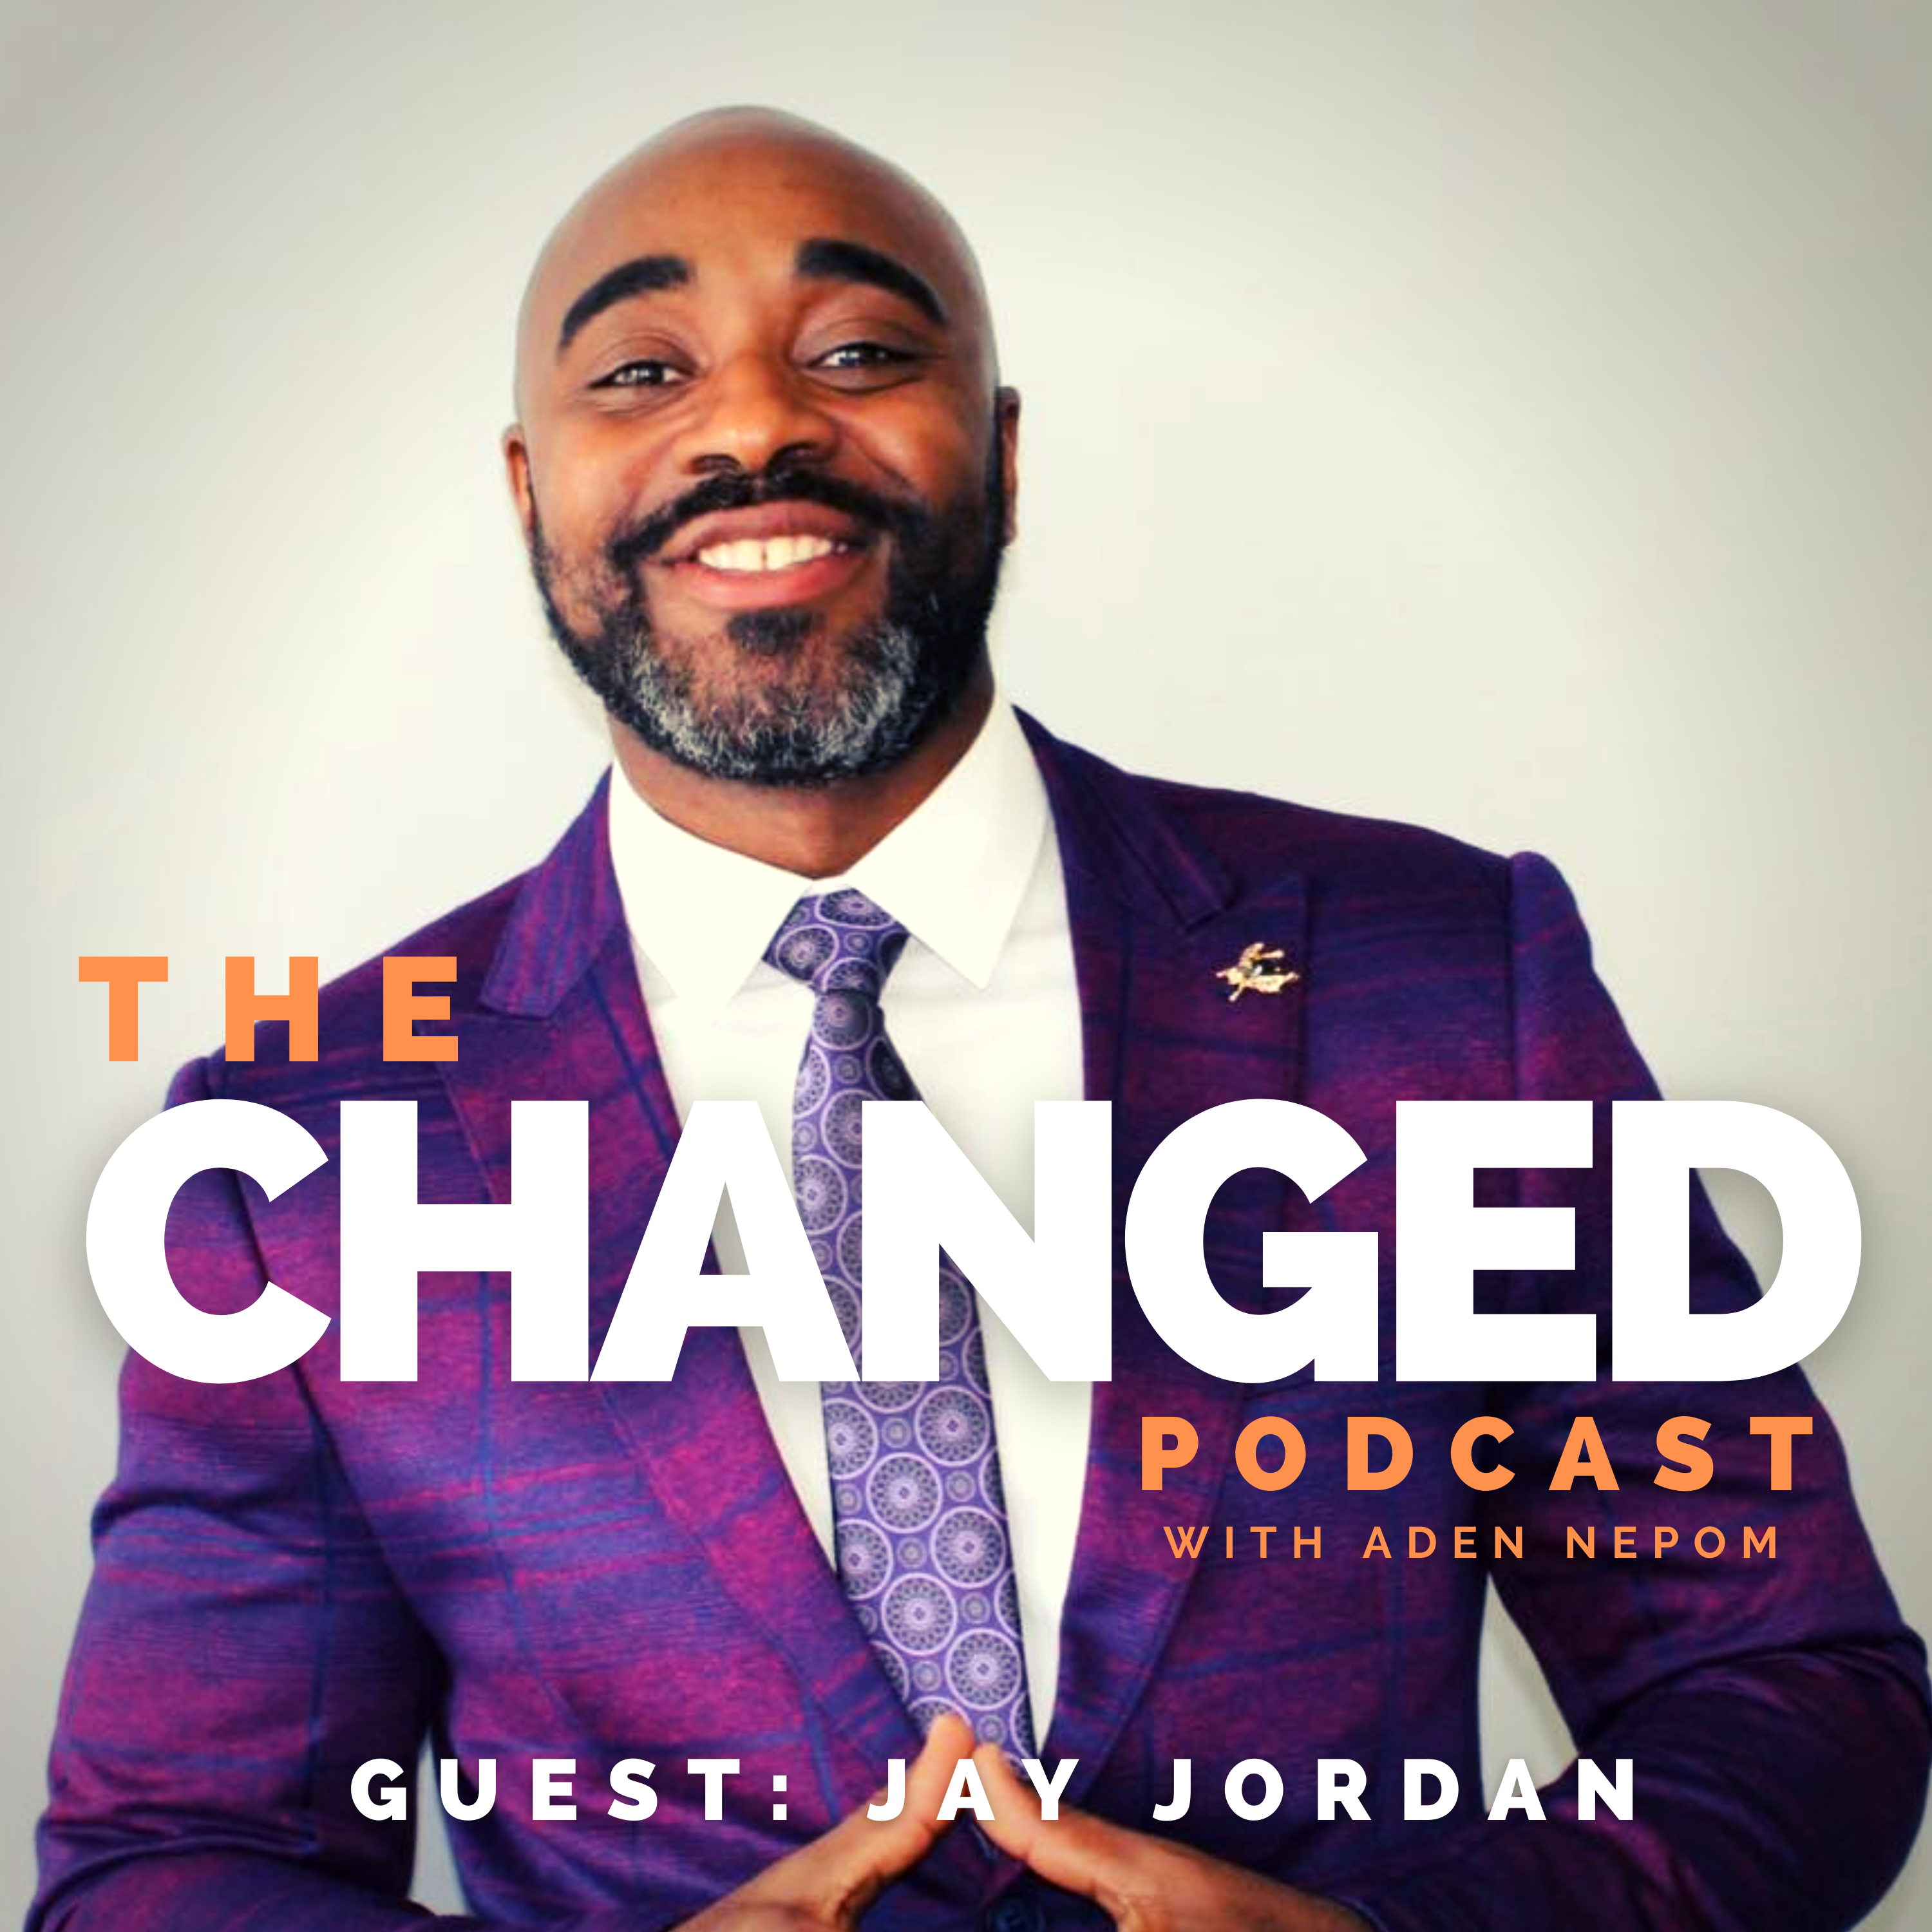 Vice President of the Alliance for Safety and Justice, Jay Jordan talks about what it means to spark change, on the Changed Podcast